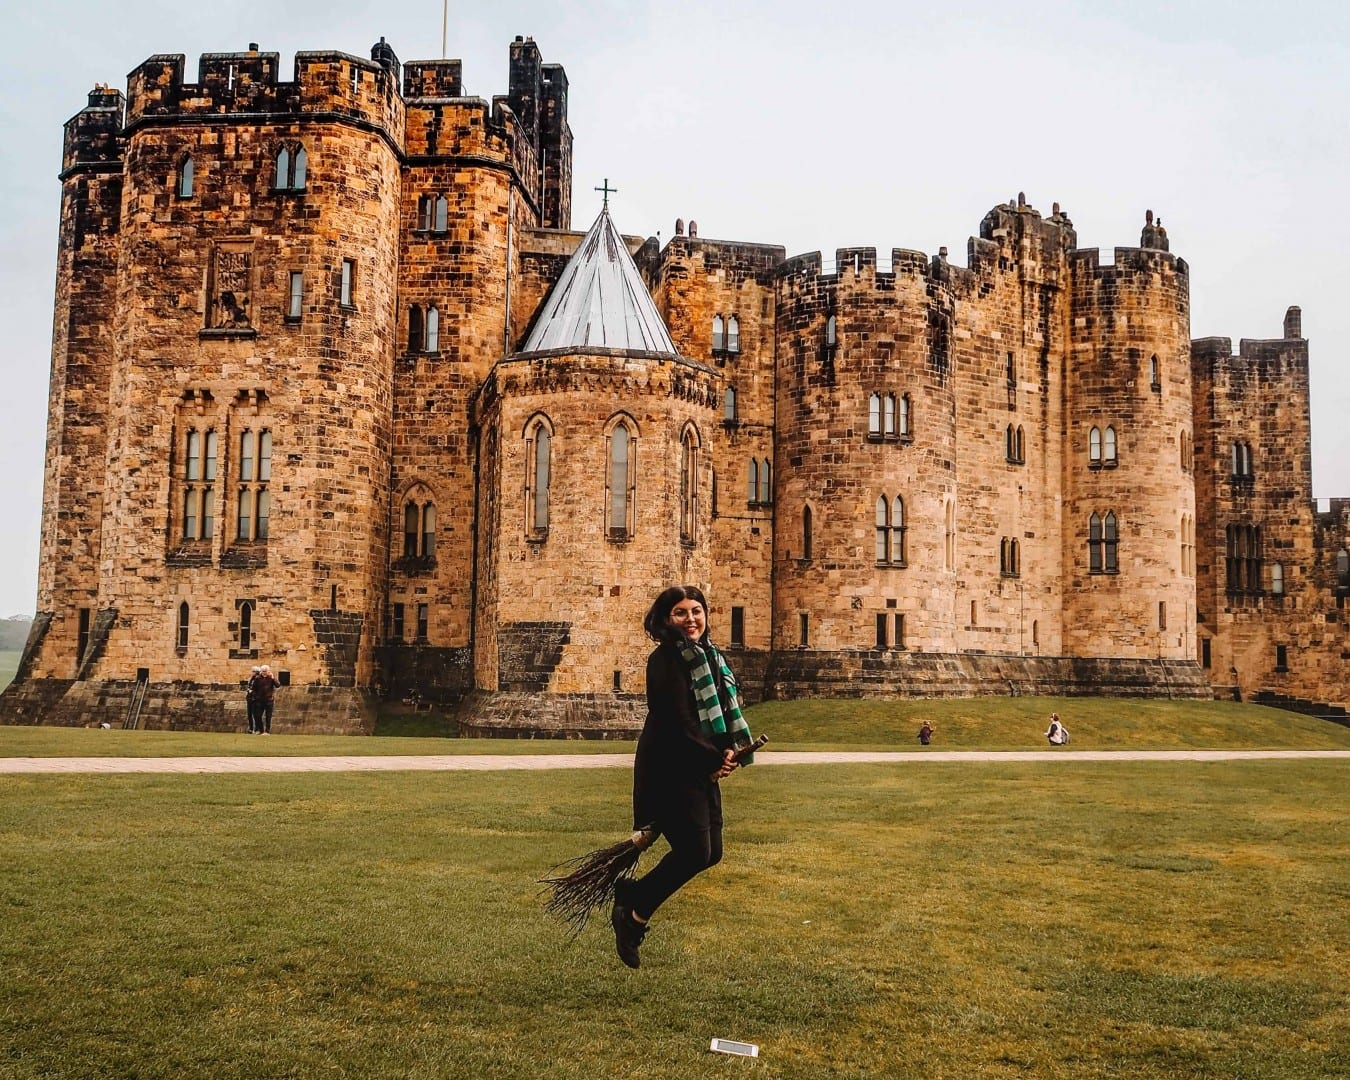 alnwick castle harry potter film locations | Alnwick Castle Broomstick Lessons